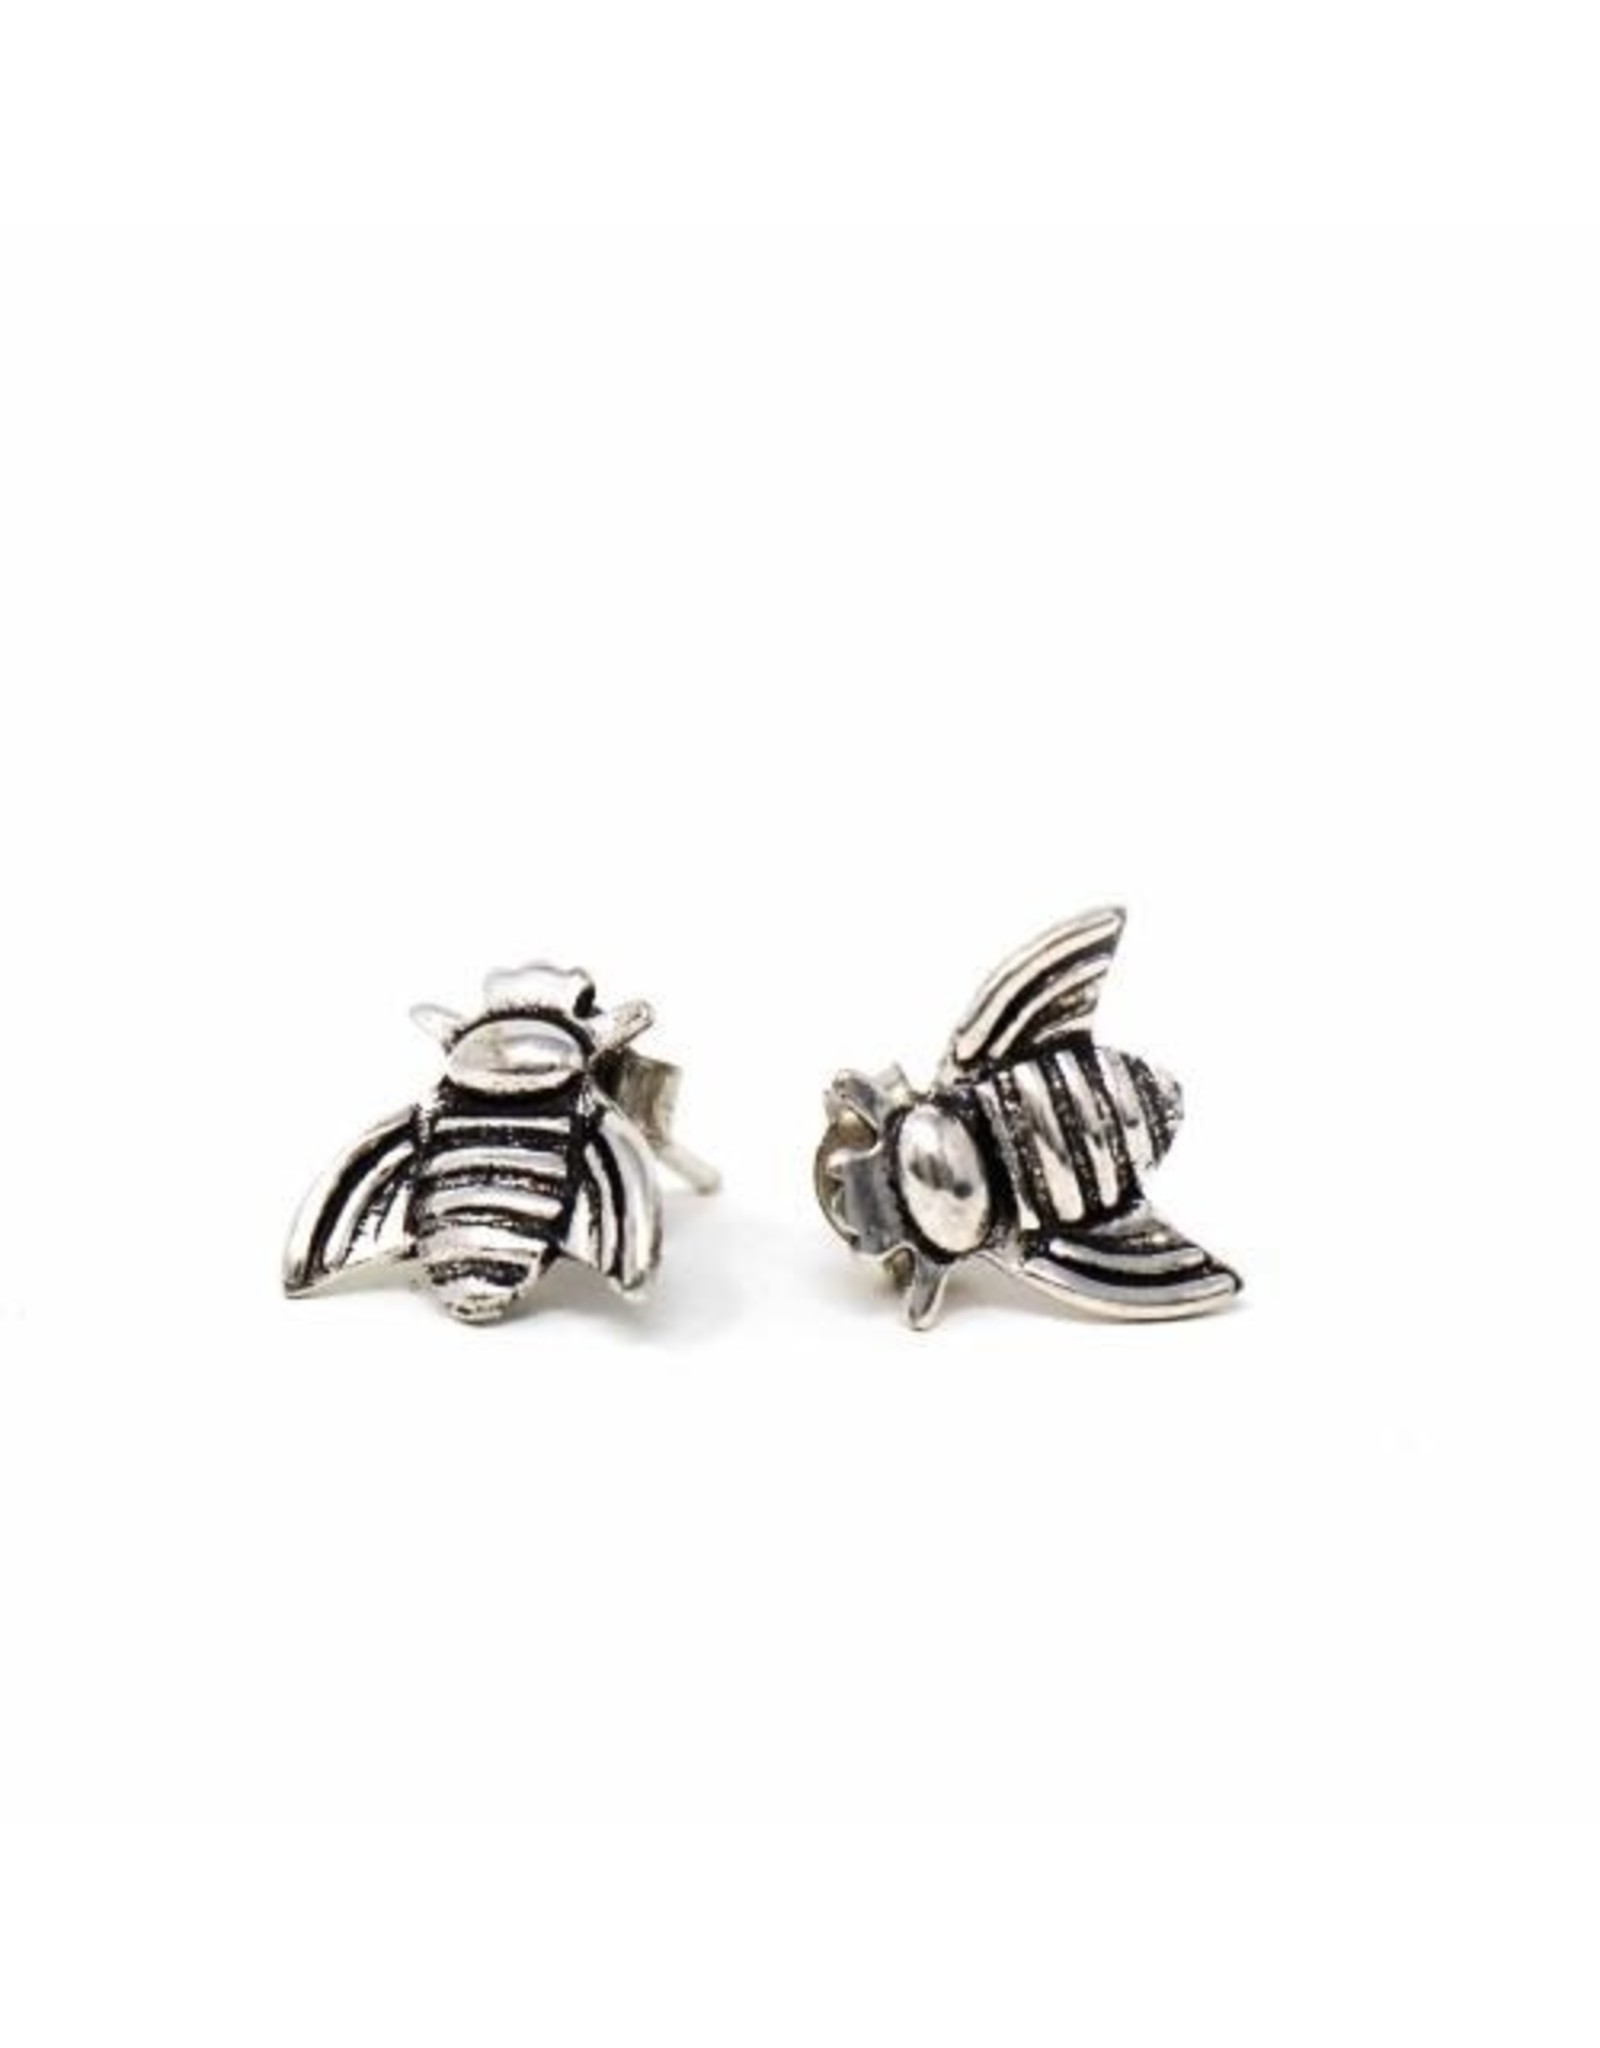 Global Crafts Honeybee Stud Earrings